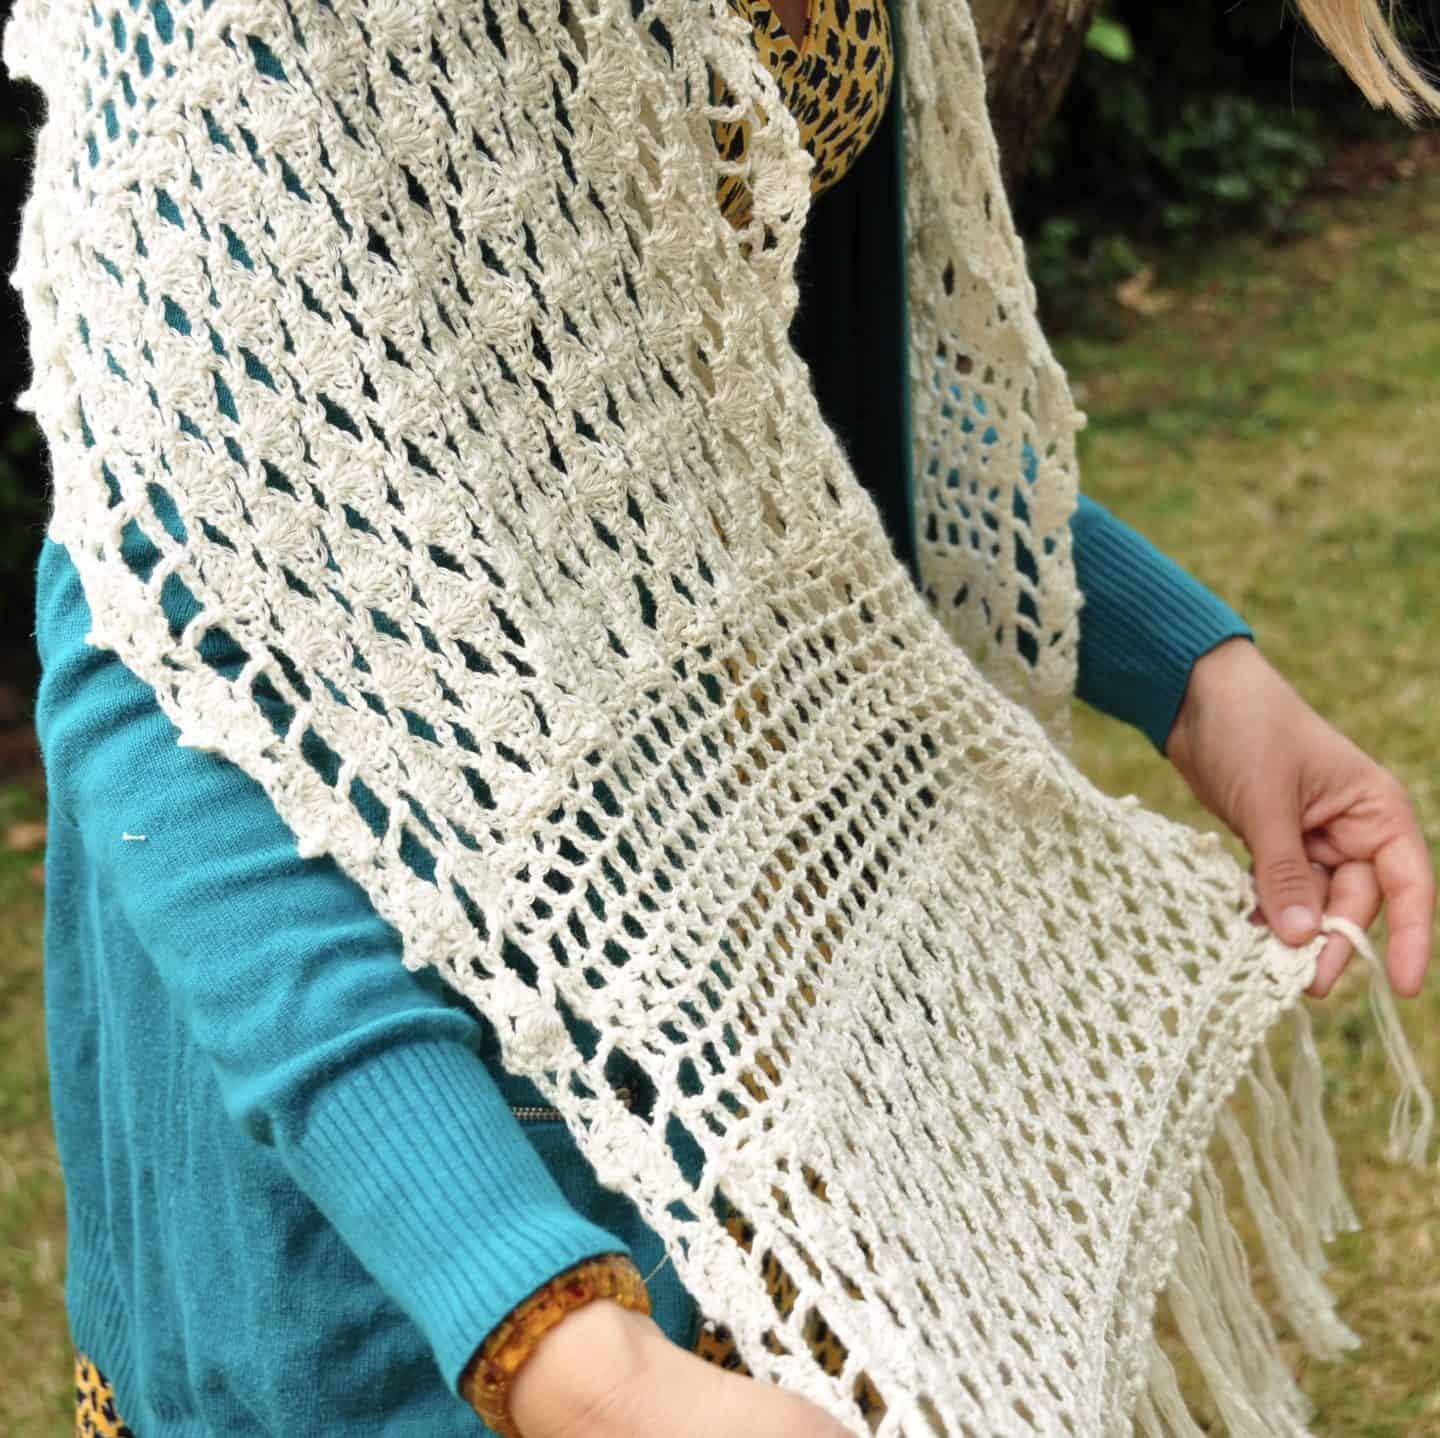 Learn to crochet this exquisite lace crochet shawl with a free crochet pattern and step by step crochet lace shell stitch tutorial. The rectangular shawl in made from 5 shell stitch panels joined by filet crochet sections and completed with a simple and delicate fringe. A beautiful wedding, confirmation or baptism shawl.